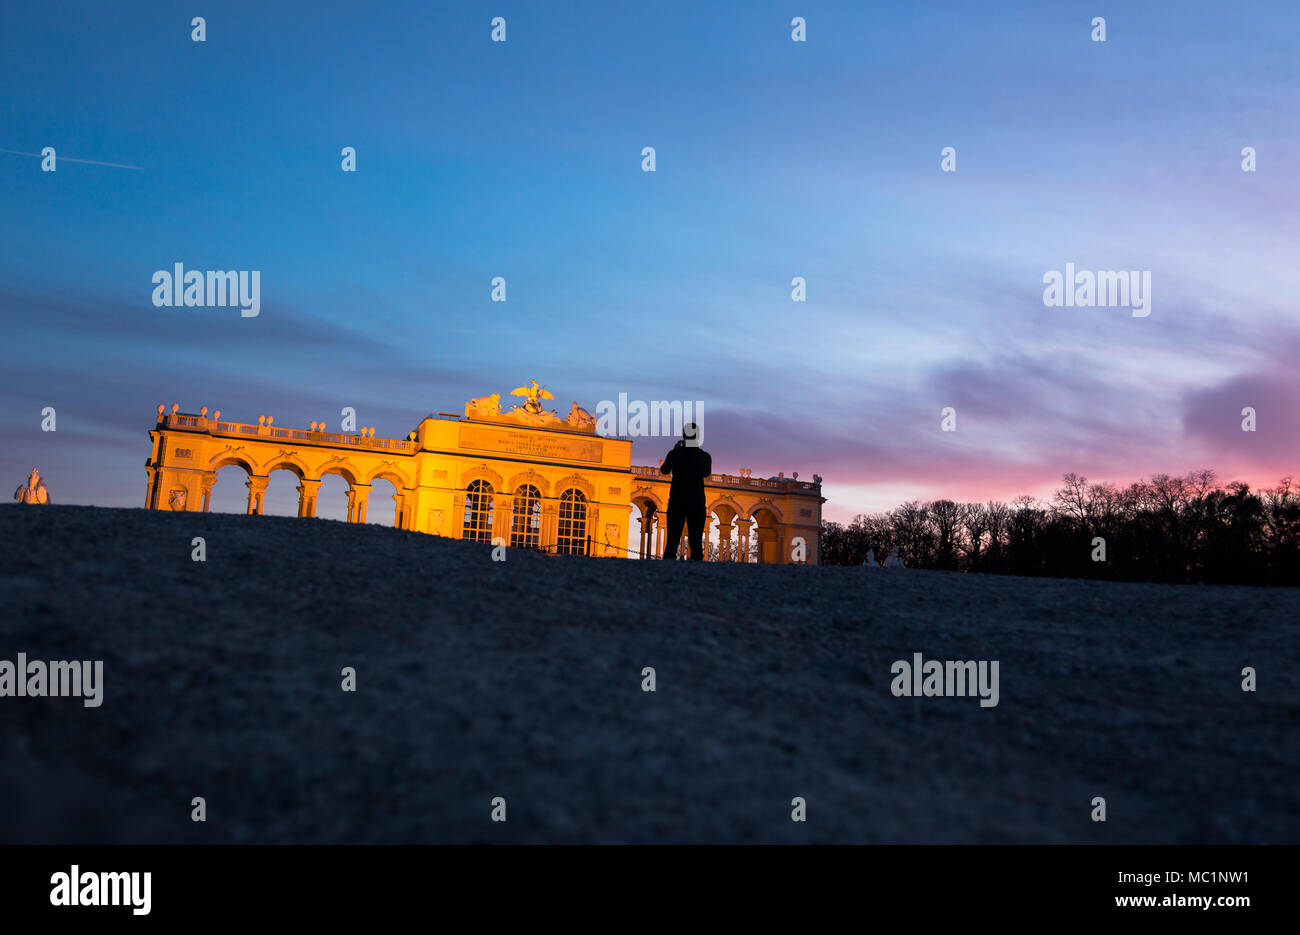 Gloriette in Schönbrunner Schloss Park at late evening in golden hour light. Low, wide angle perspective, shoot from ground level. Tourist making a ph - Stock Image